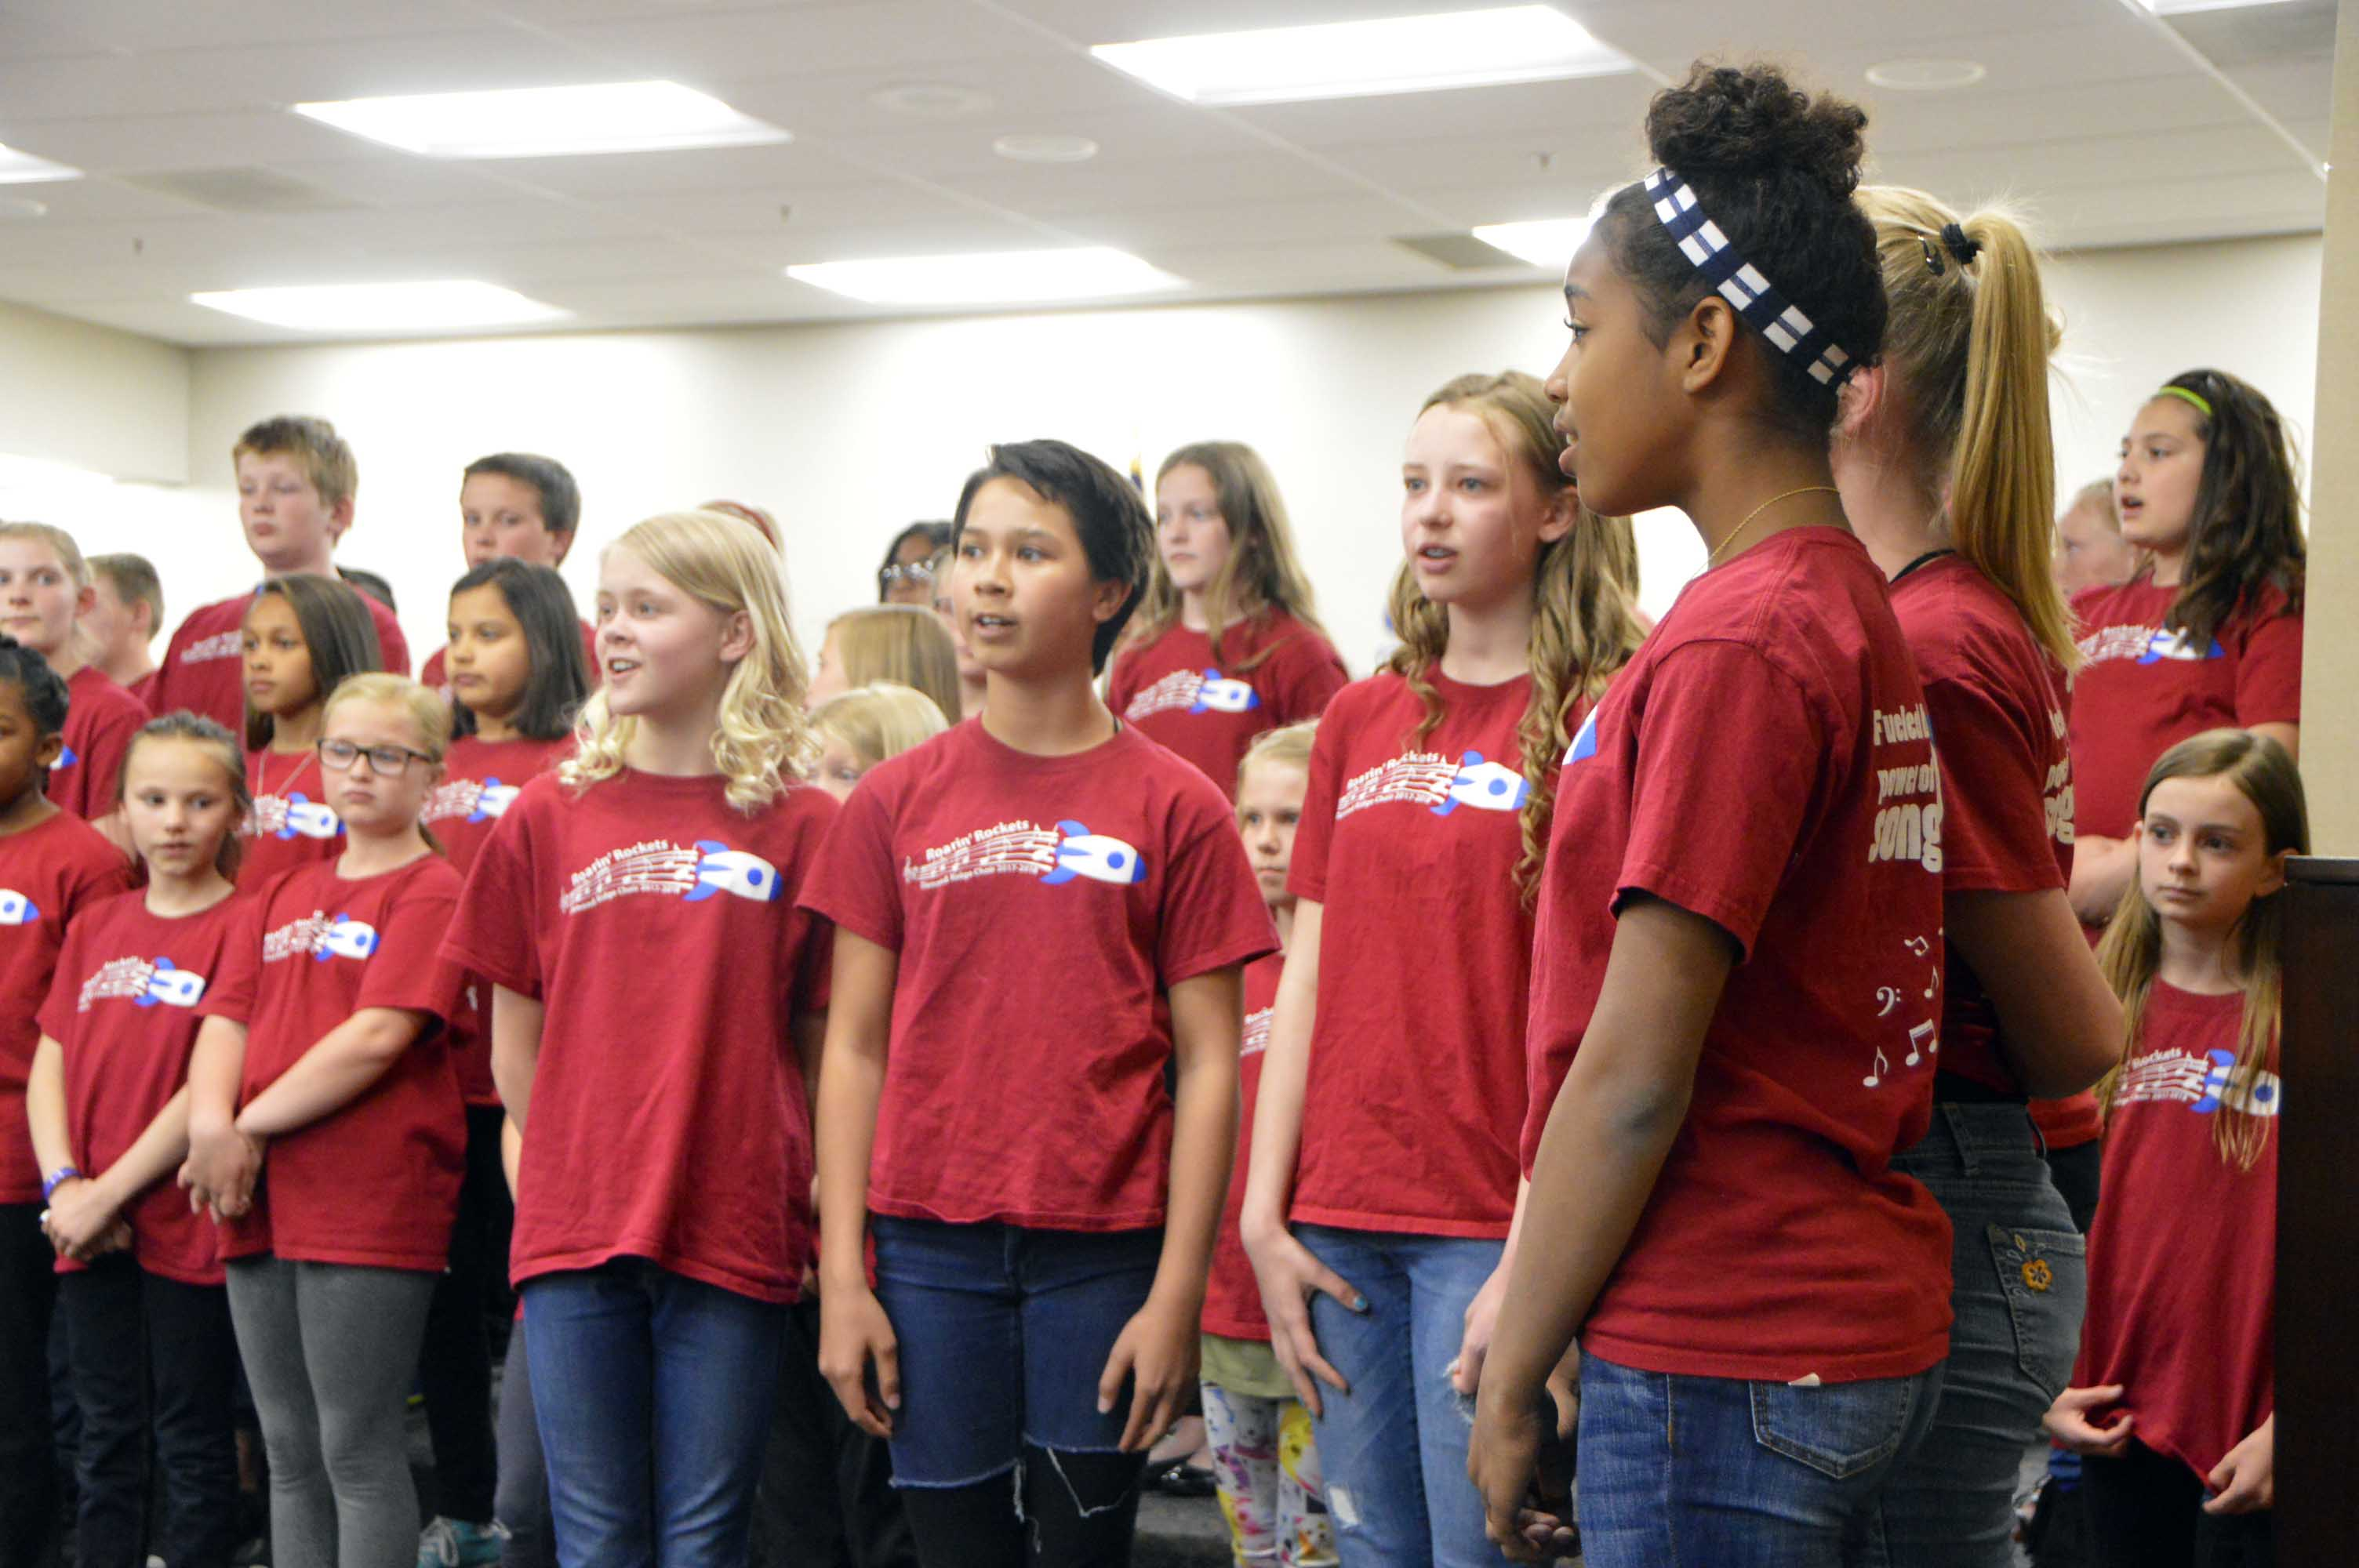 Diamond Ridge students sing at board meeting